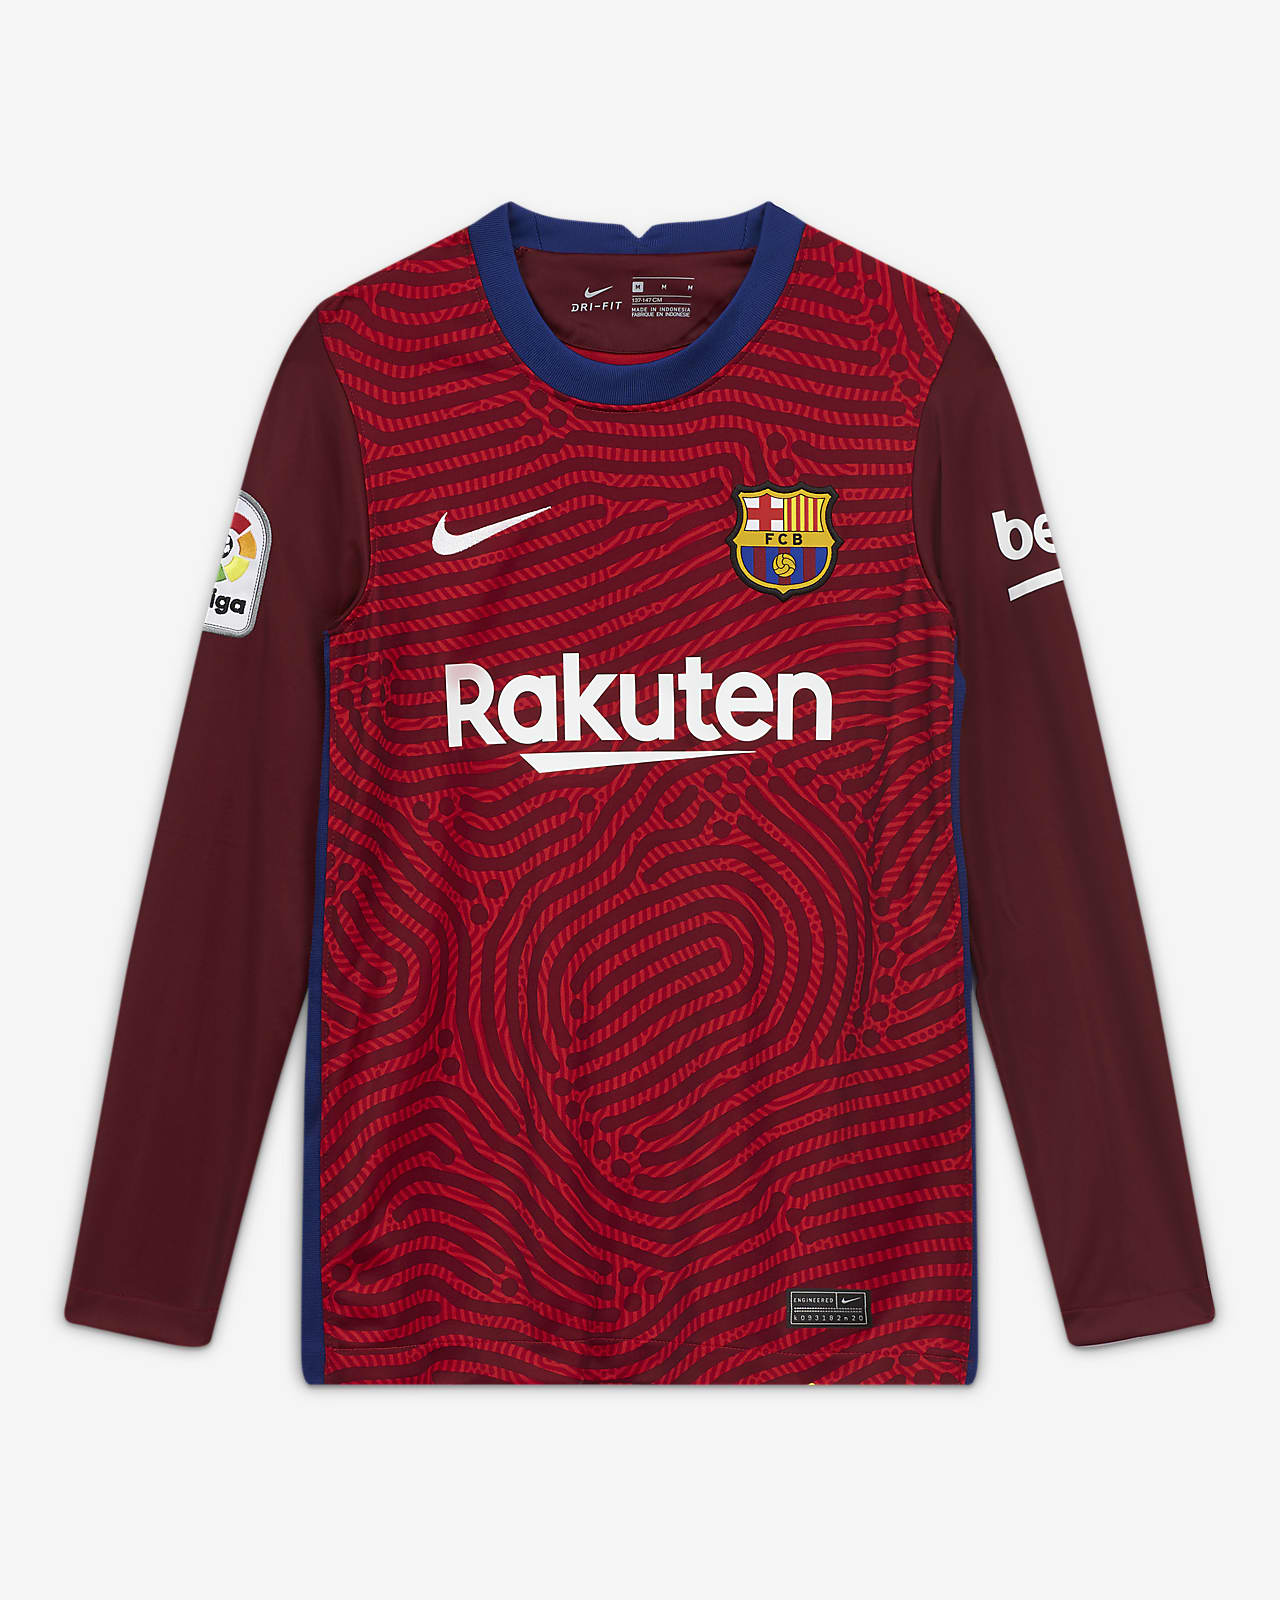 f c barcelona 2020 21 stadium goalkeeper older kids football shirt nike gb f c barcelona 2020 21 stadium goalkeeper older kids football shirt